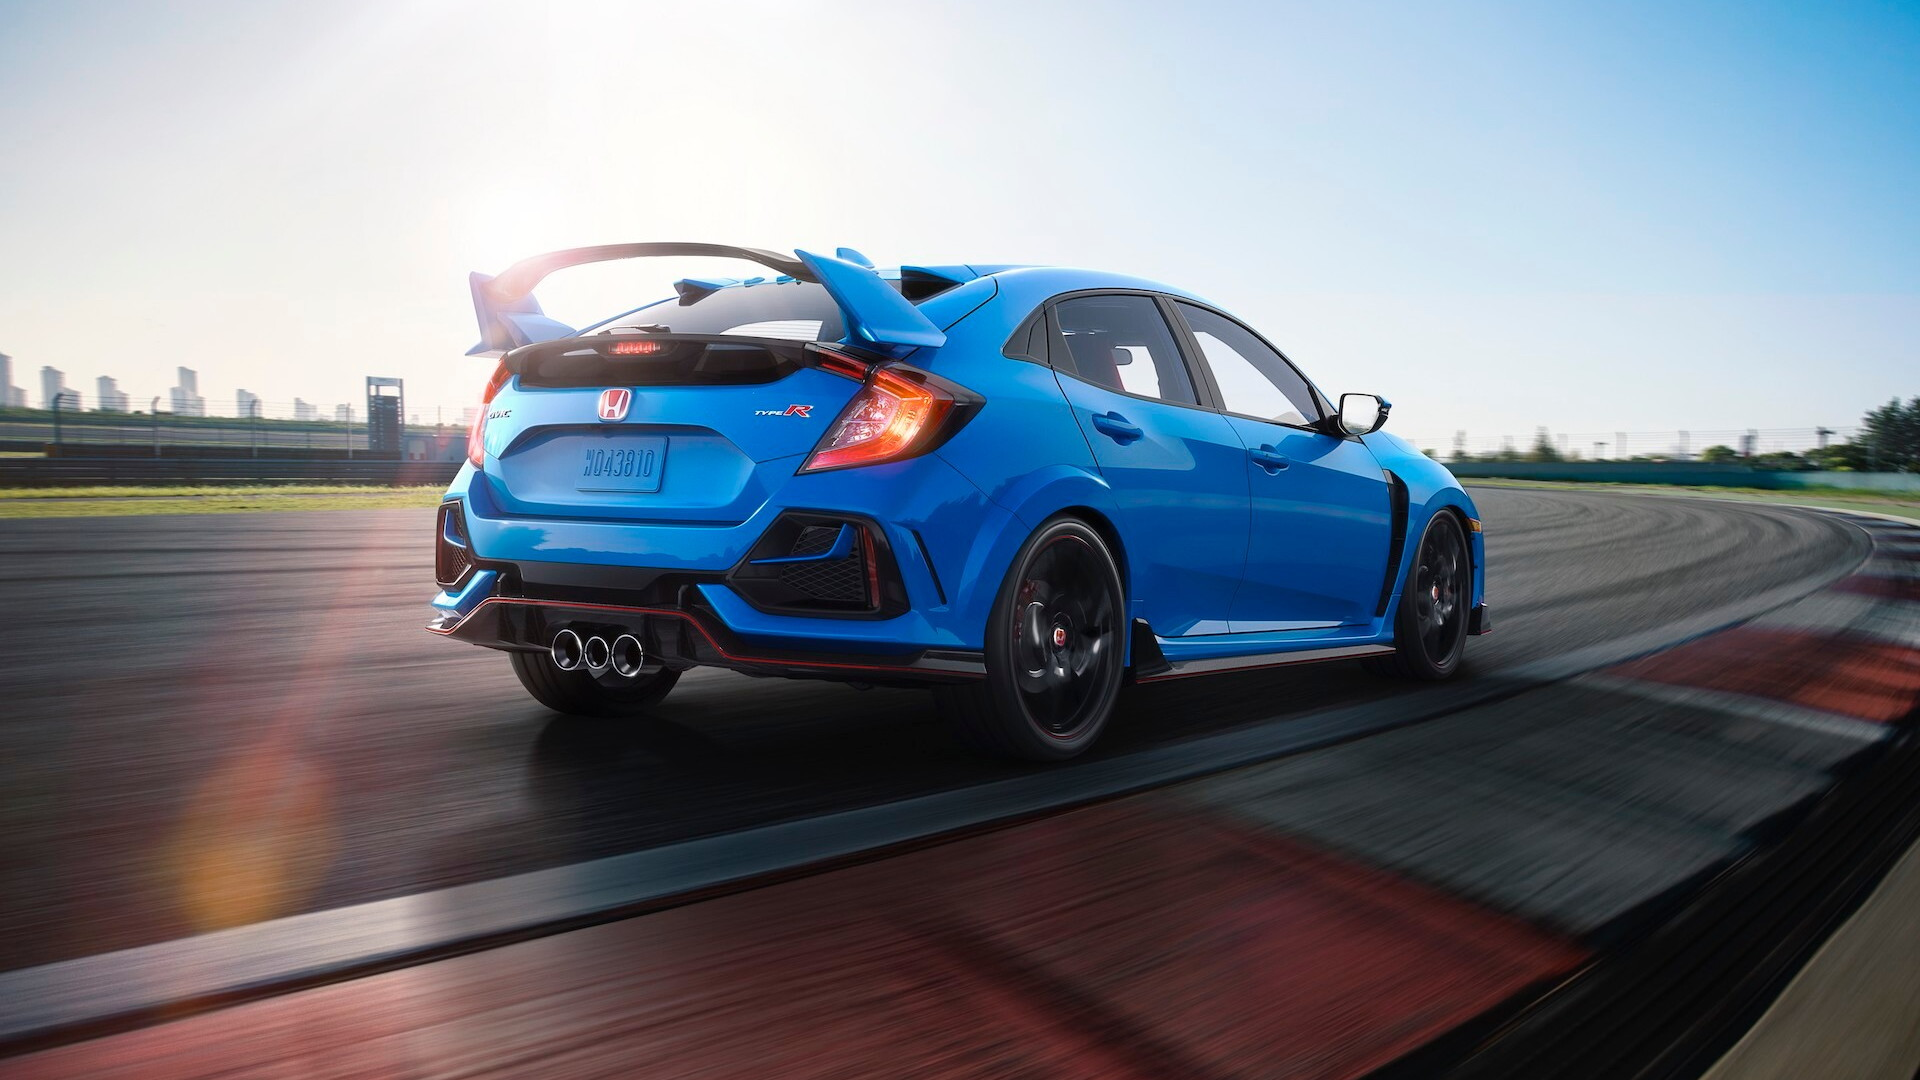 Revised 2020 Honda Civic Type R promises even more performance